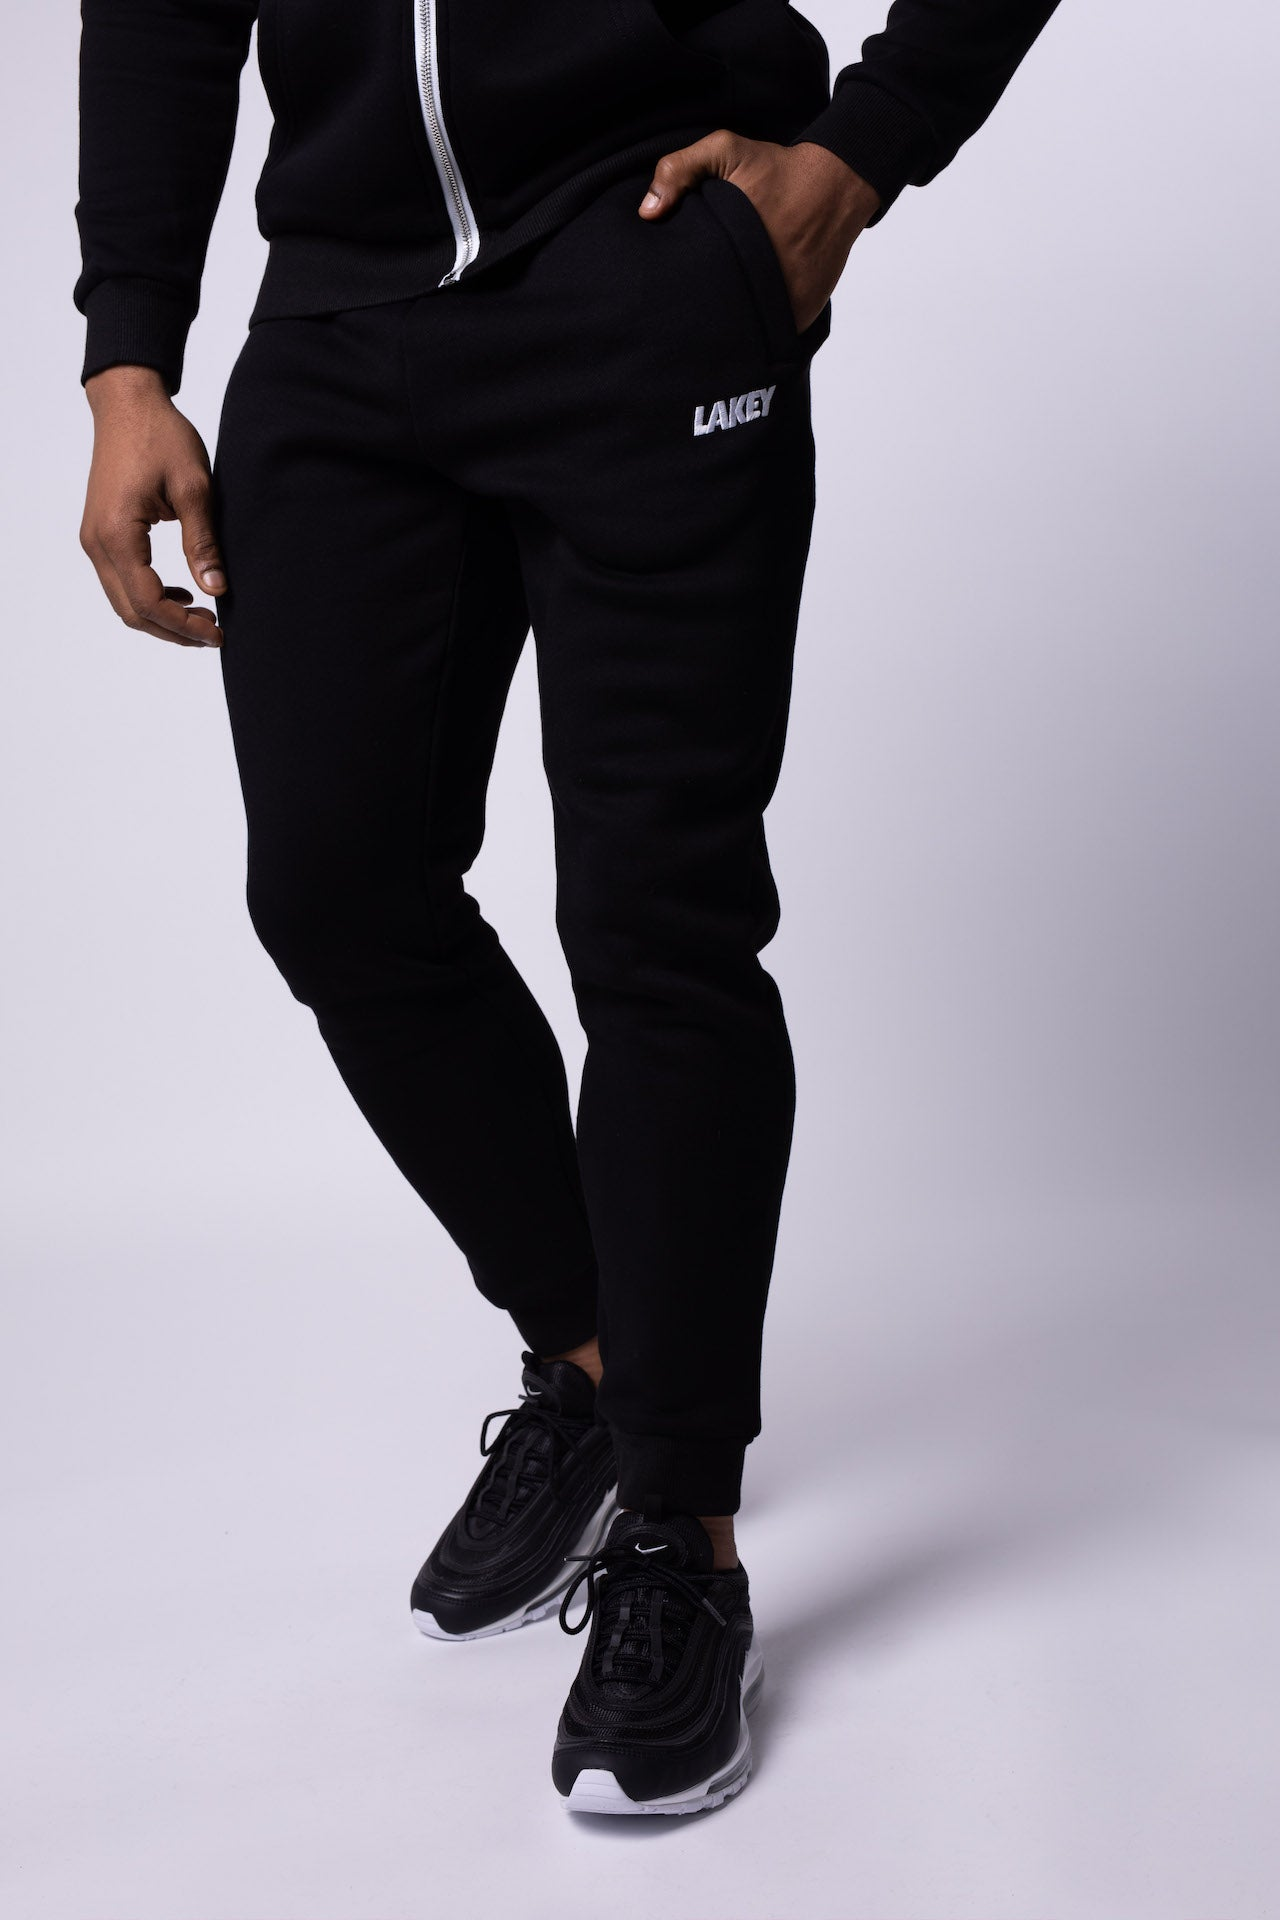 OG FLEECE JOGGERS - BLACK - Lakey